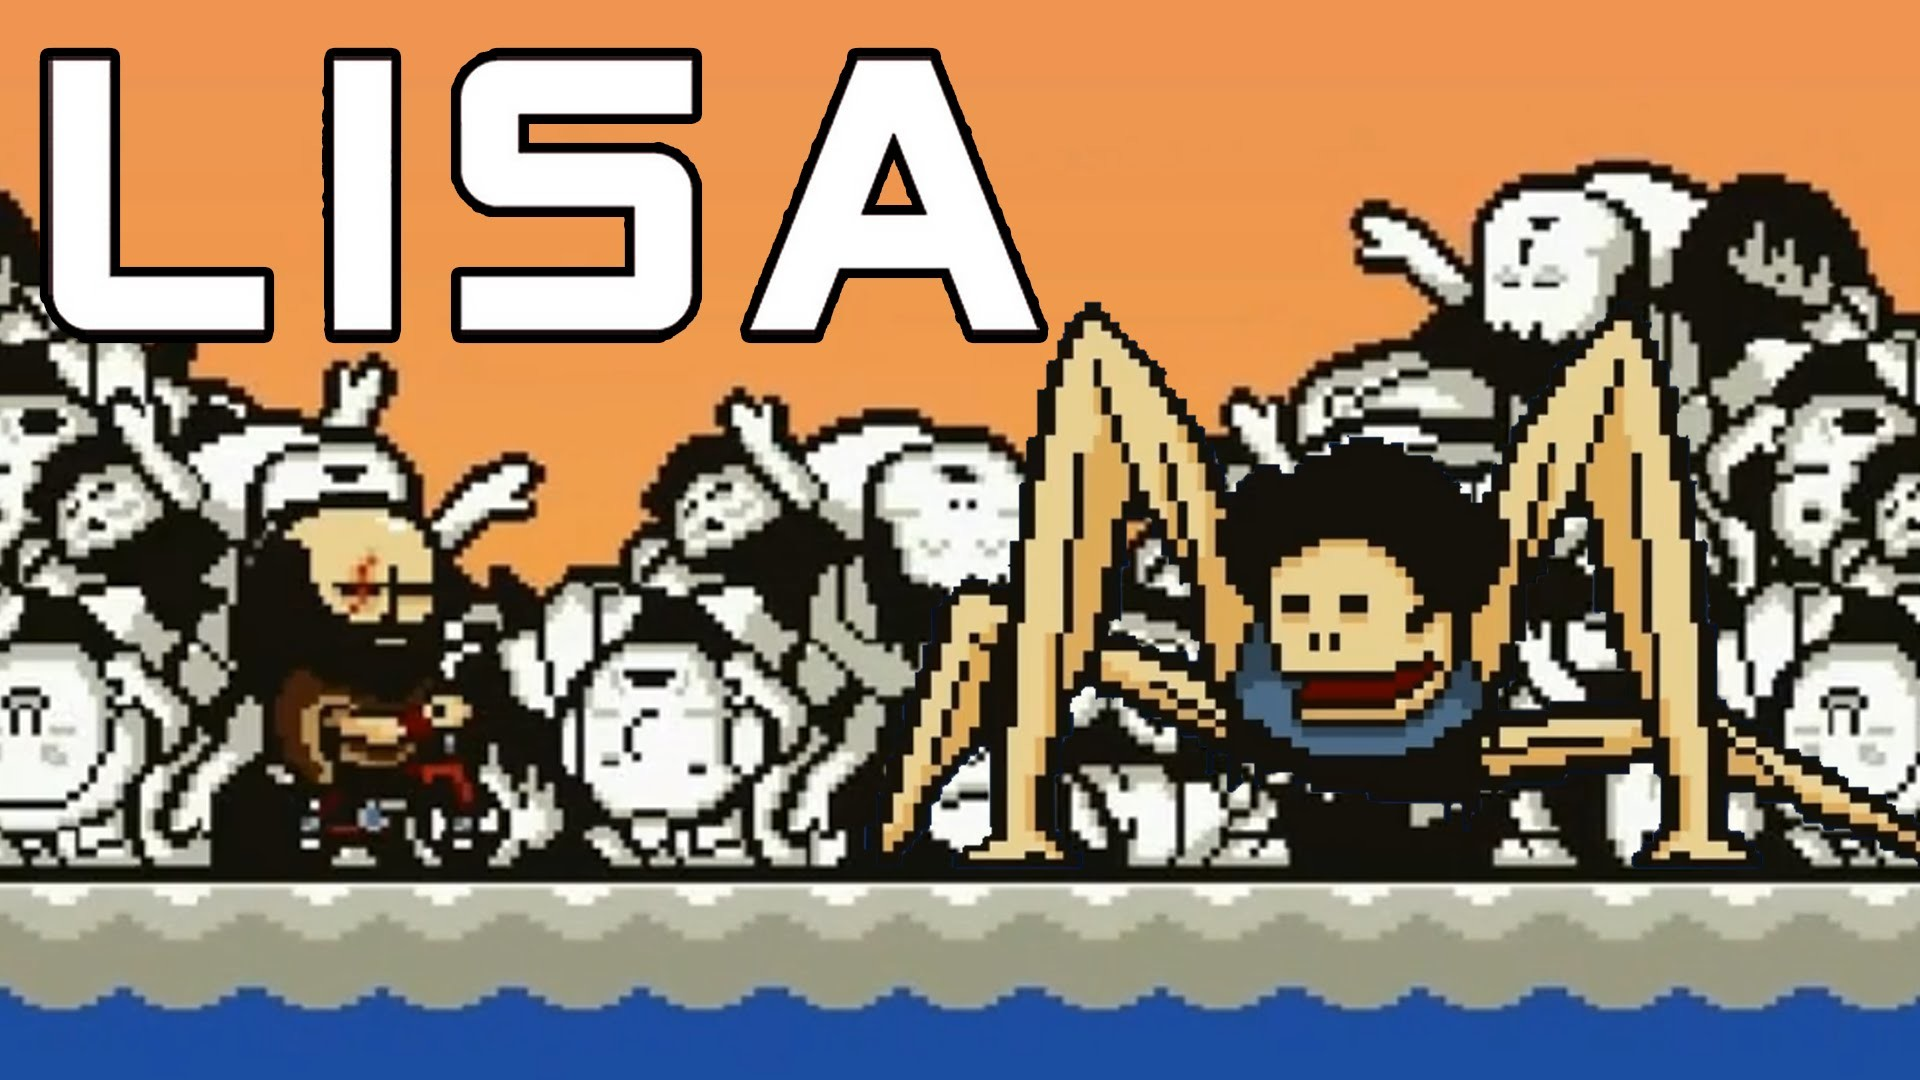 LISA The Painful RPG Part 25 WHAT IS THAT